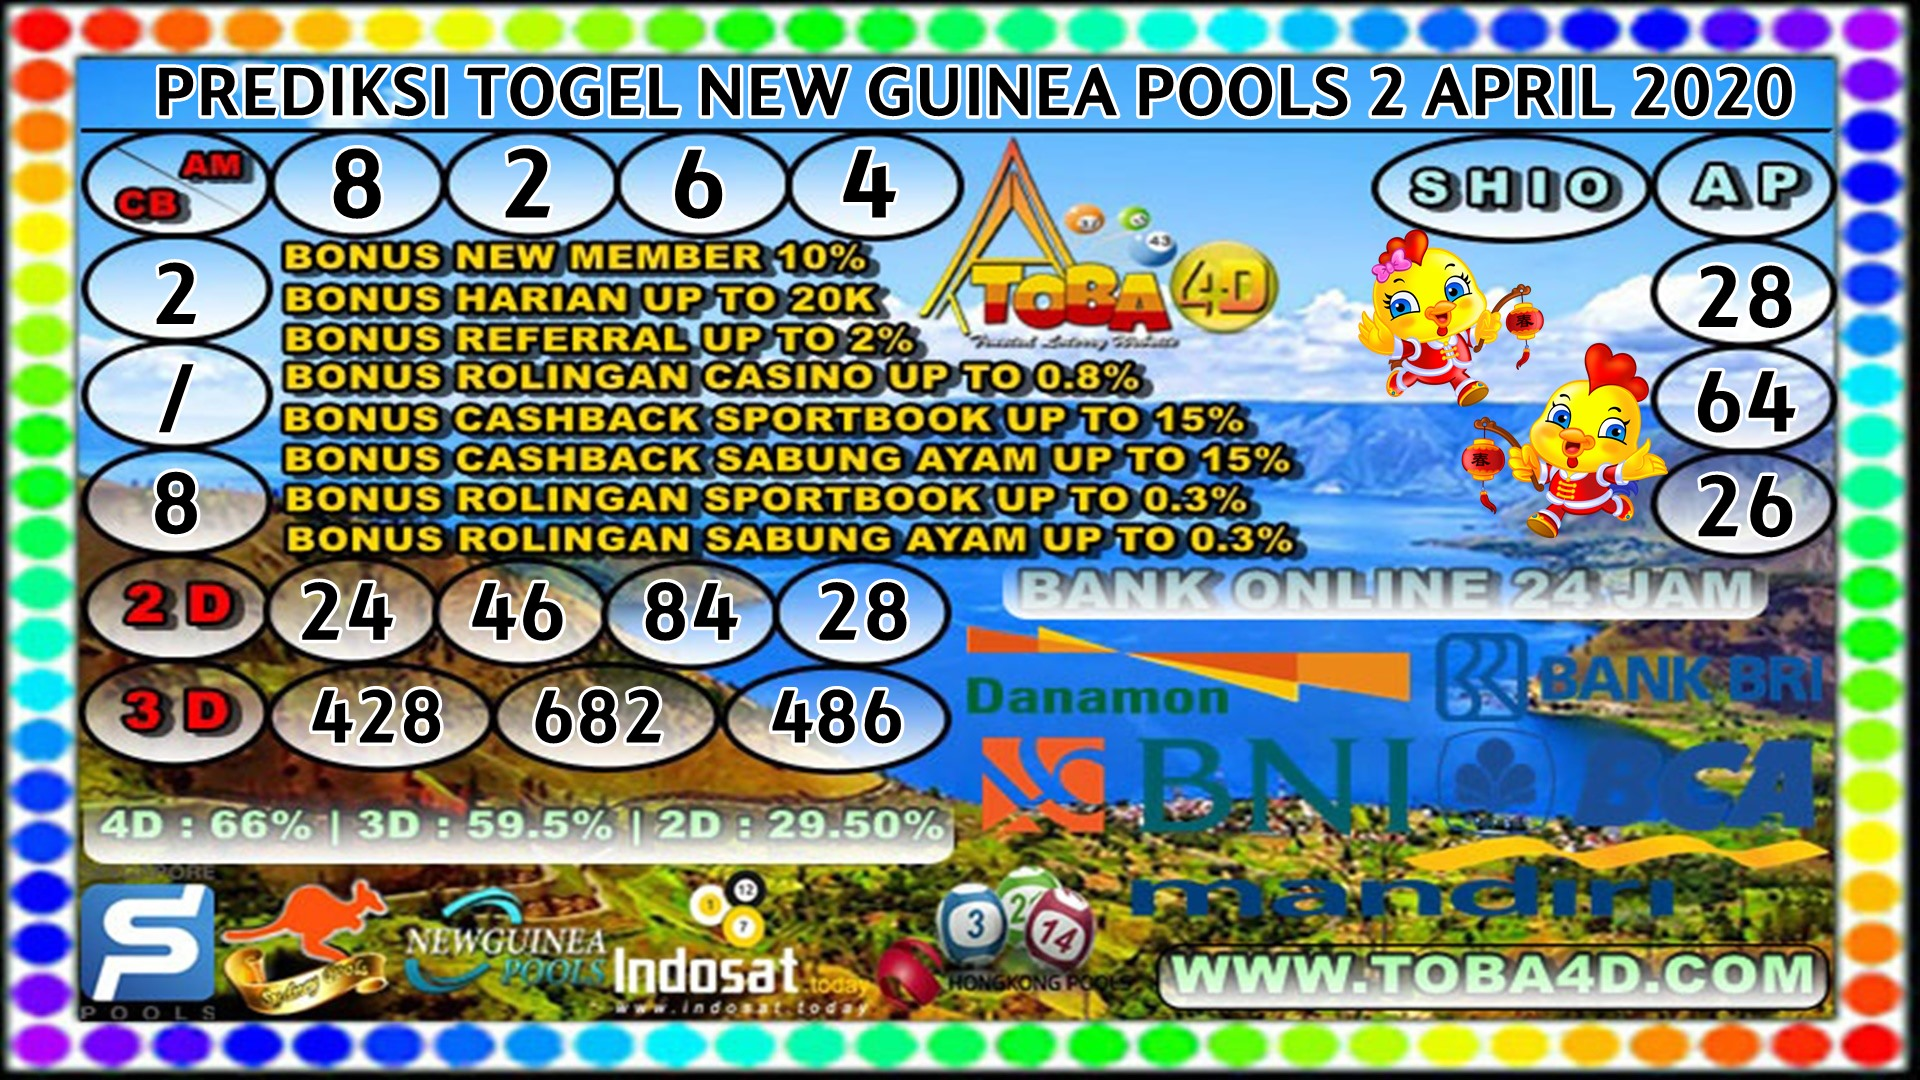 PREDIKSI TOGEL NEW GUINEA POOLS 2 APRIL 2020